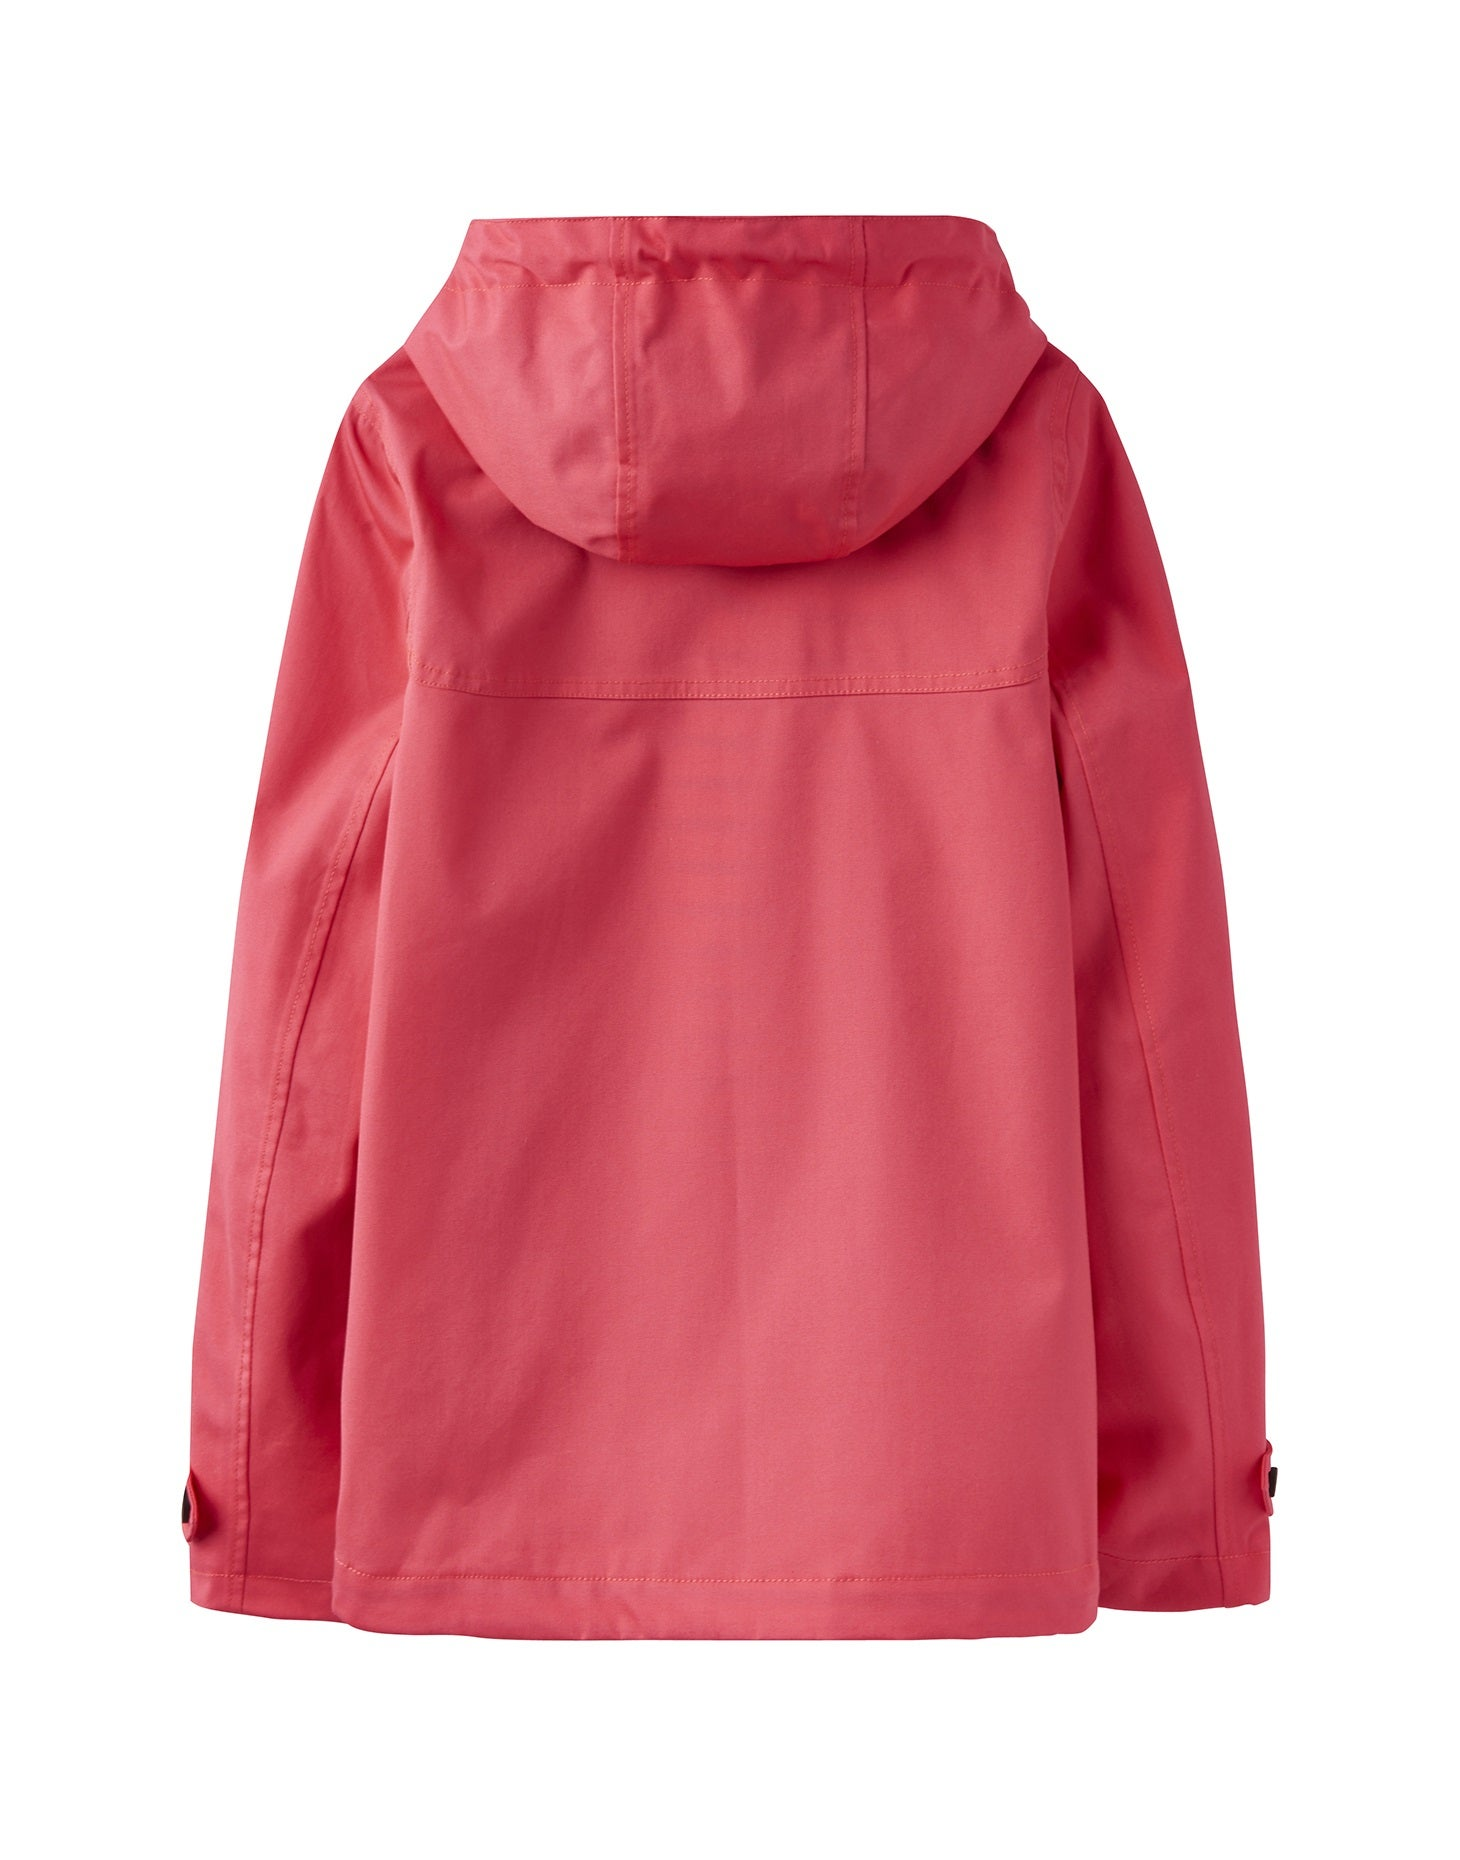 Joules Coast Waterproof Womens Jacket Coat Redcurrant All Sizes